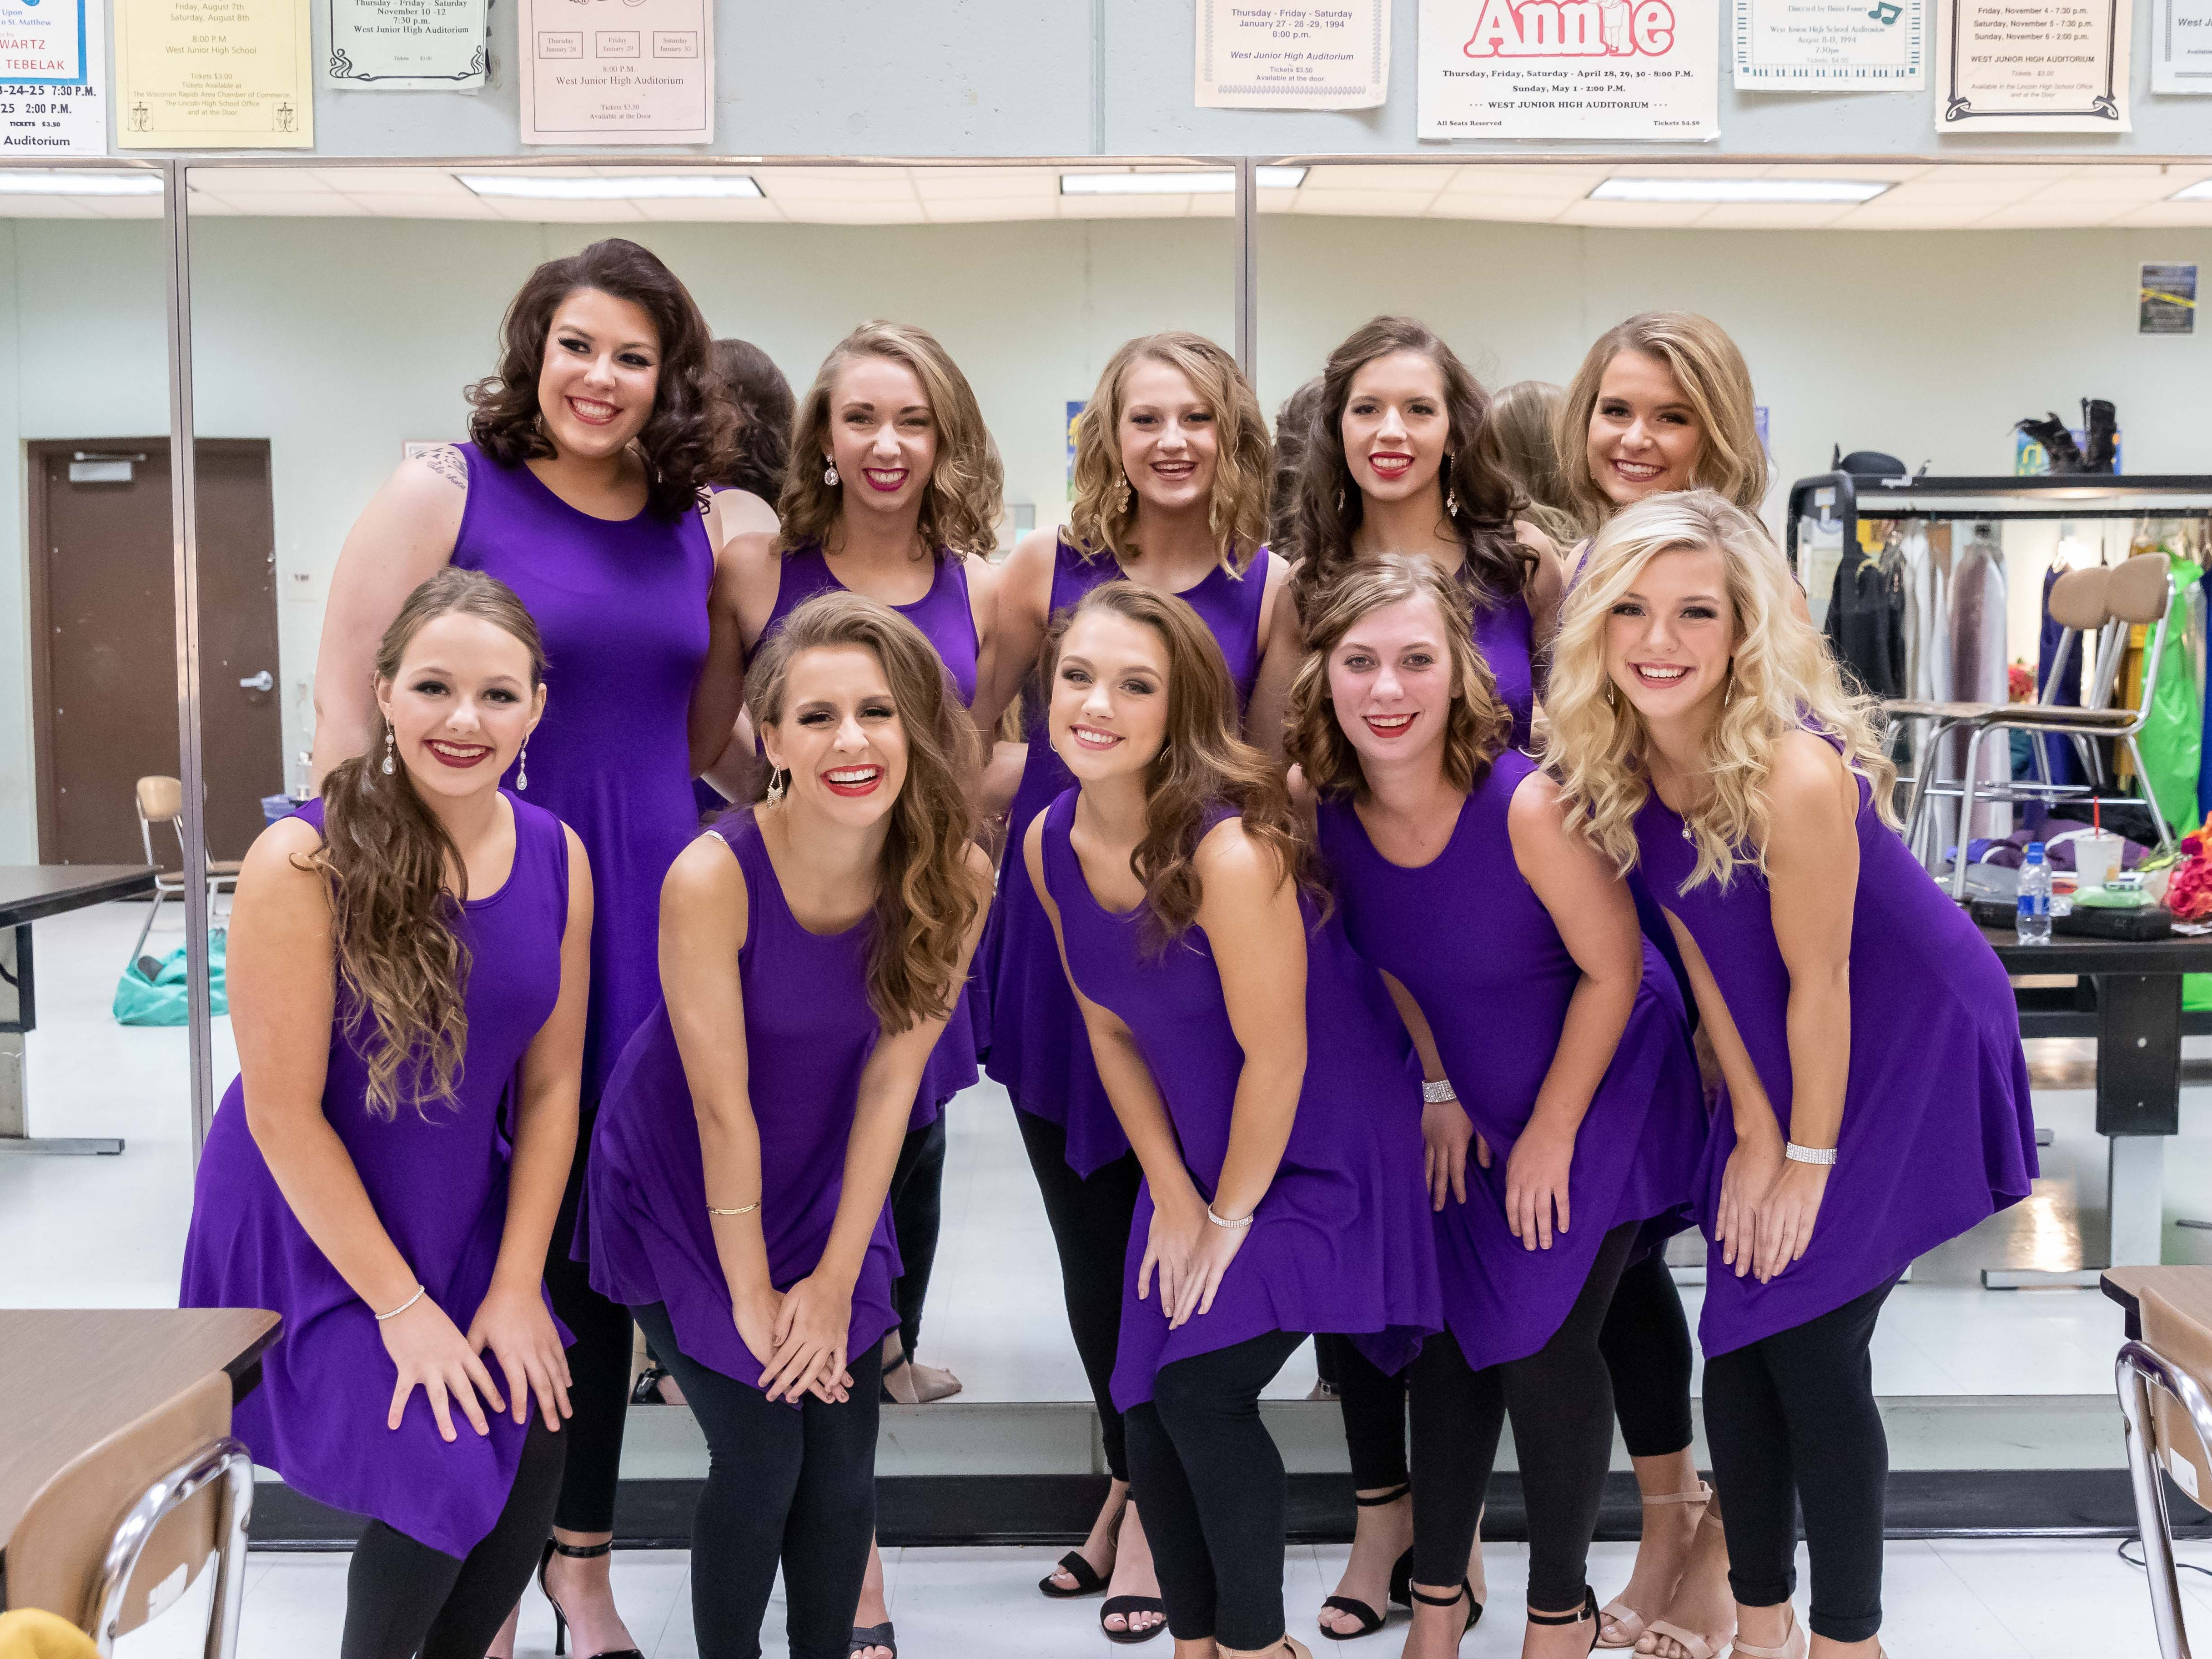 The 2019 Miss Wisconsin Rapids Area Scholarship Pageant contestants pose for a photo before the annual pageant Saturday, Oct. 27, 2018, at the Performing Arts Center of Wisconsin Rapids. Pictured are Maggie Weiland, front row from left, Corryn Tetzlaff, Carly Parvin, Jennifer Krakow, Casey Abbrederis; Brooke Doescher, back row from left, Danielle Moon, Kate Czarny, Mackenzie Mattheis and Ellie Schuerman.